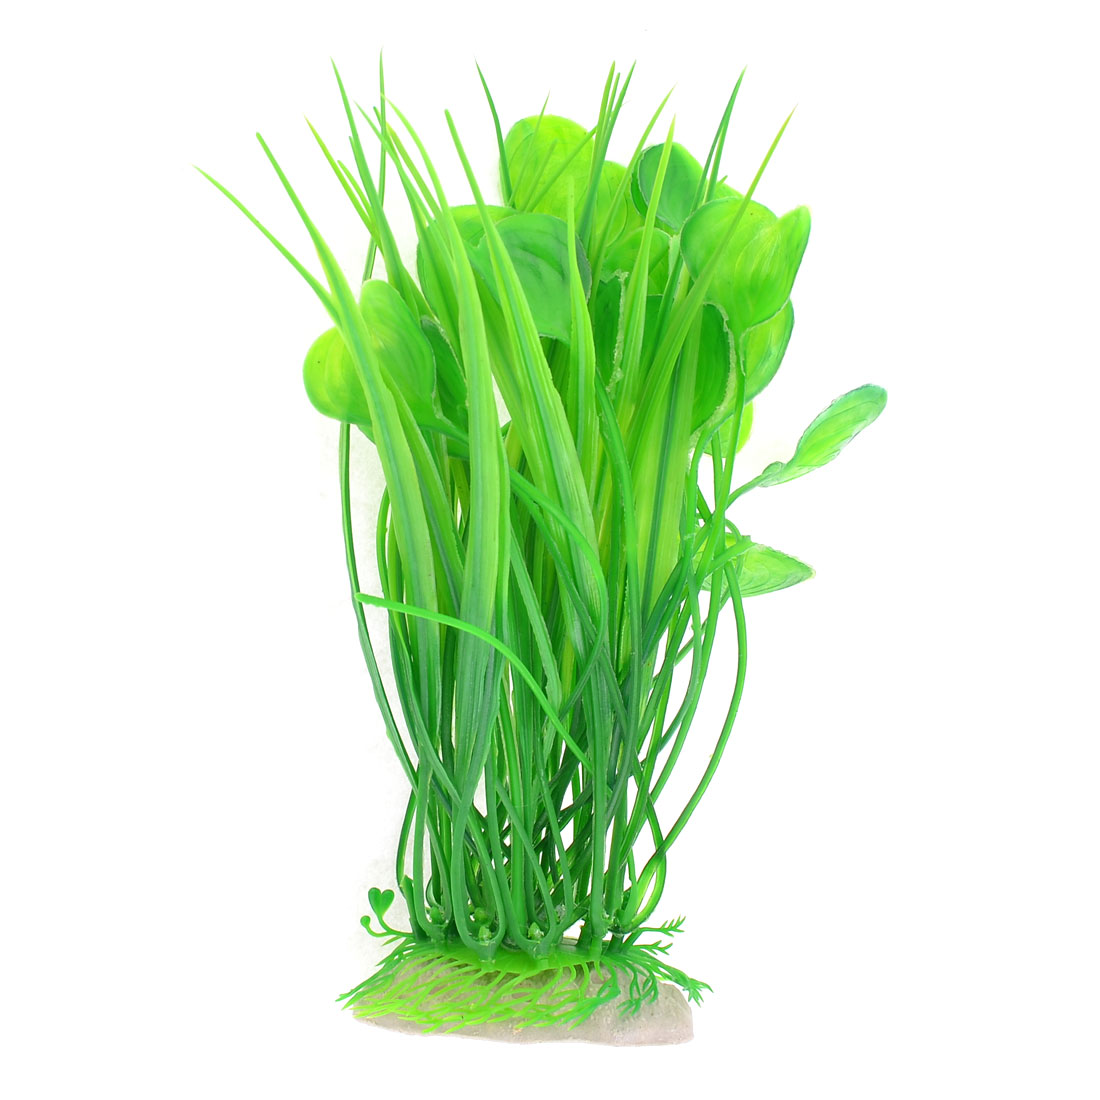 Green Aquarium Plastic Simulation Water Plant Decor 22cm High